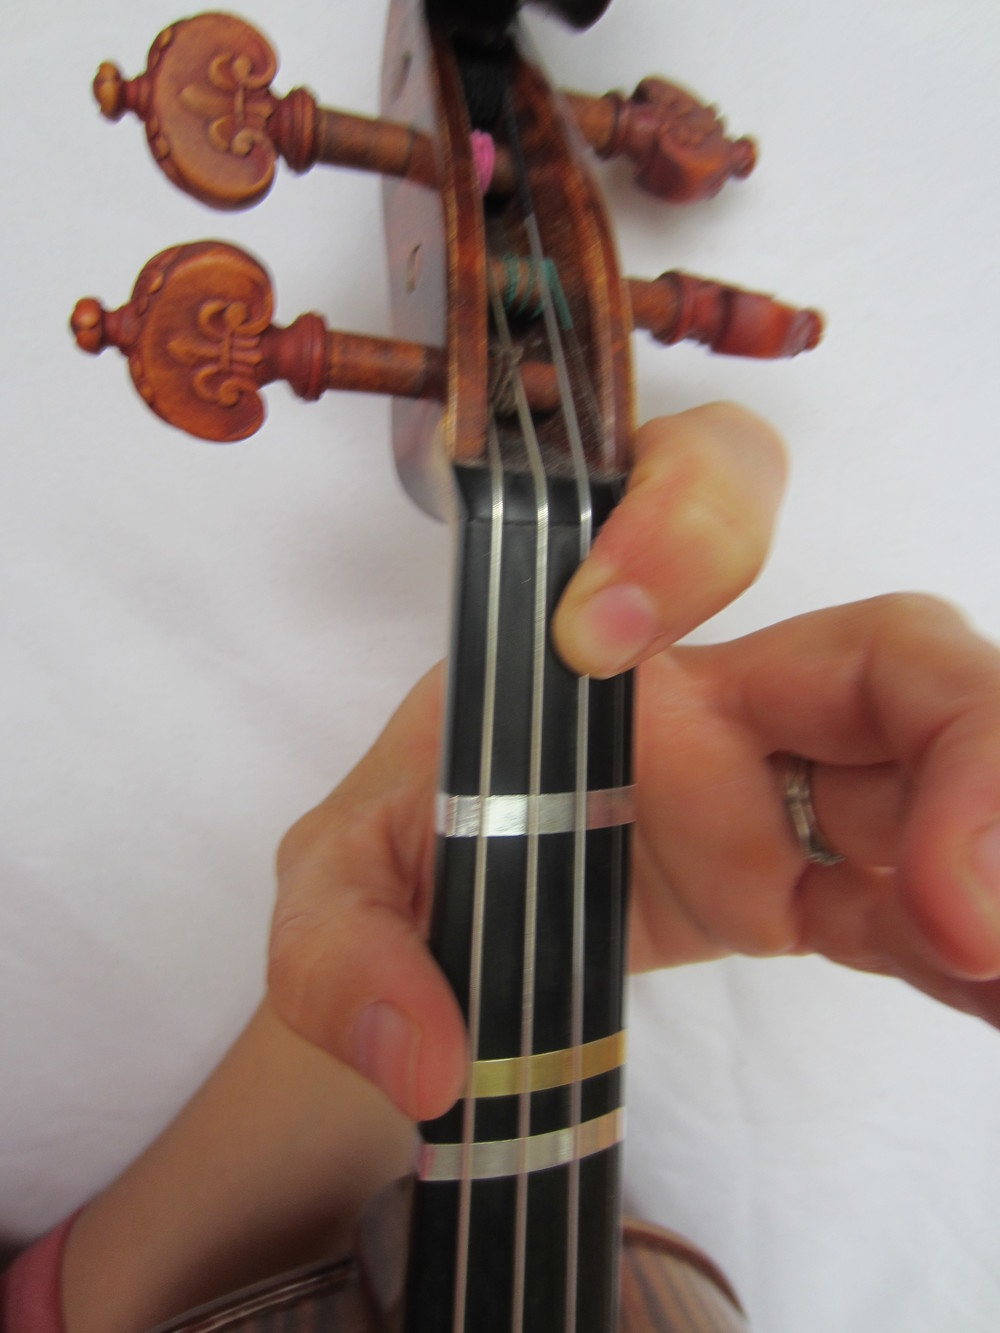 Violin Fingering Bflat on A.JPG